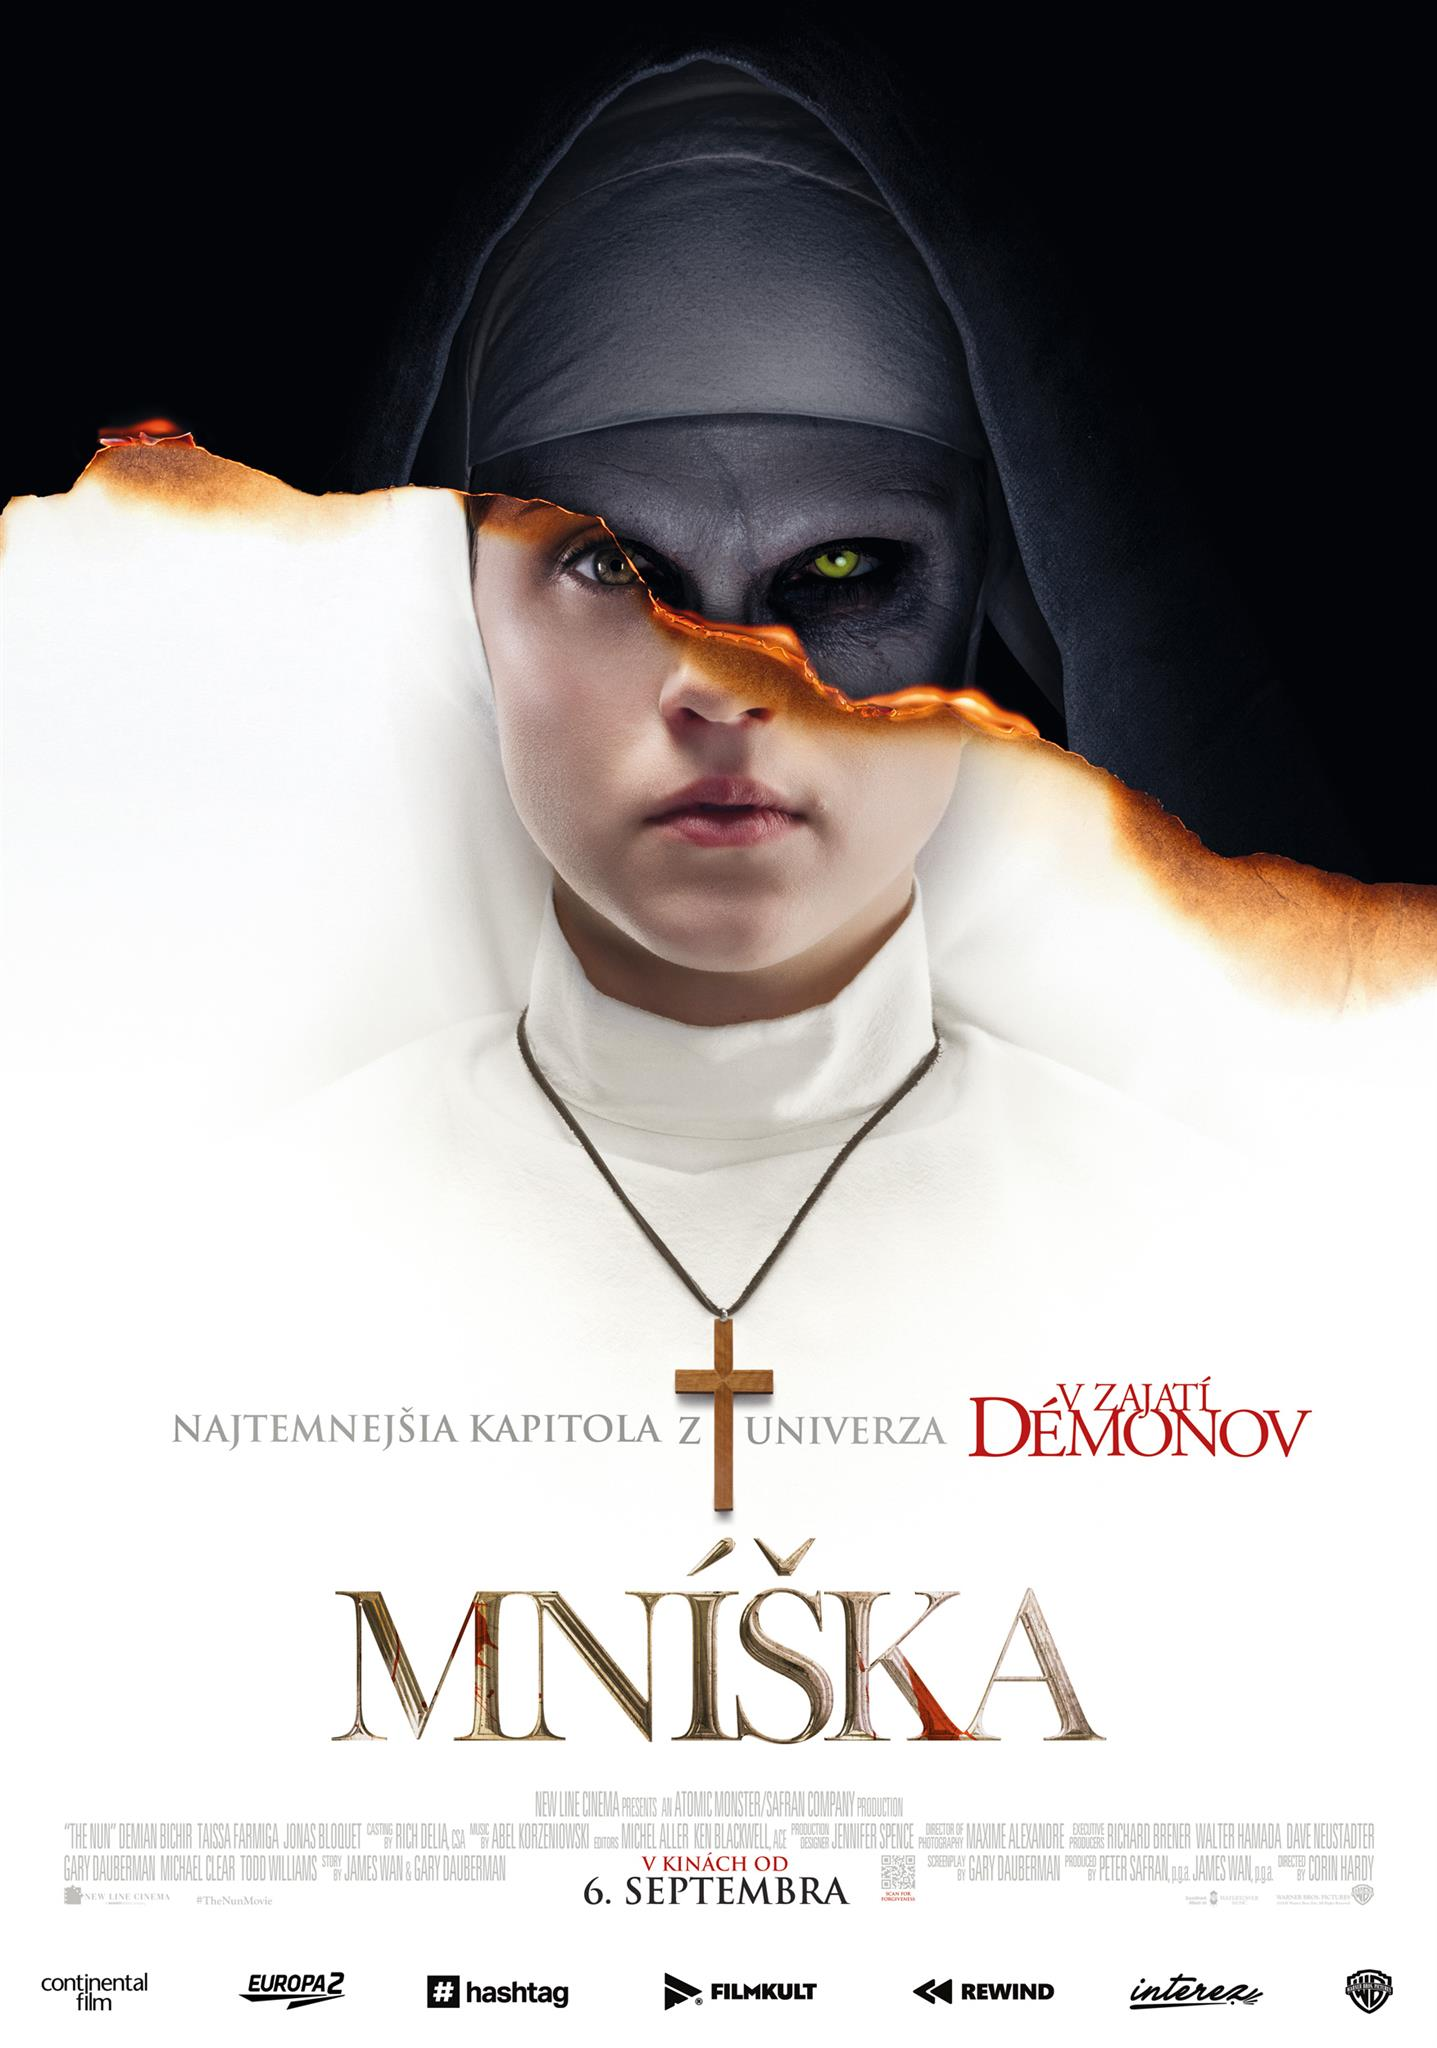 https://www.continental-film.sk/images/stories/postery/mniska-poster.jpg